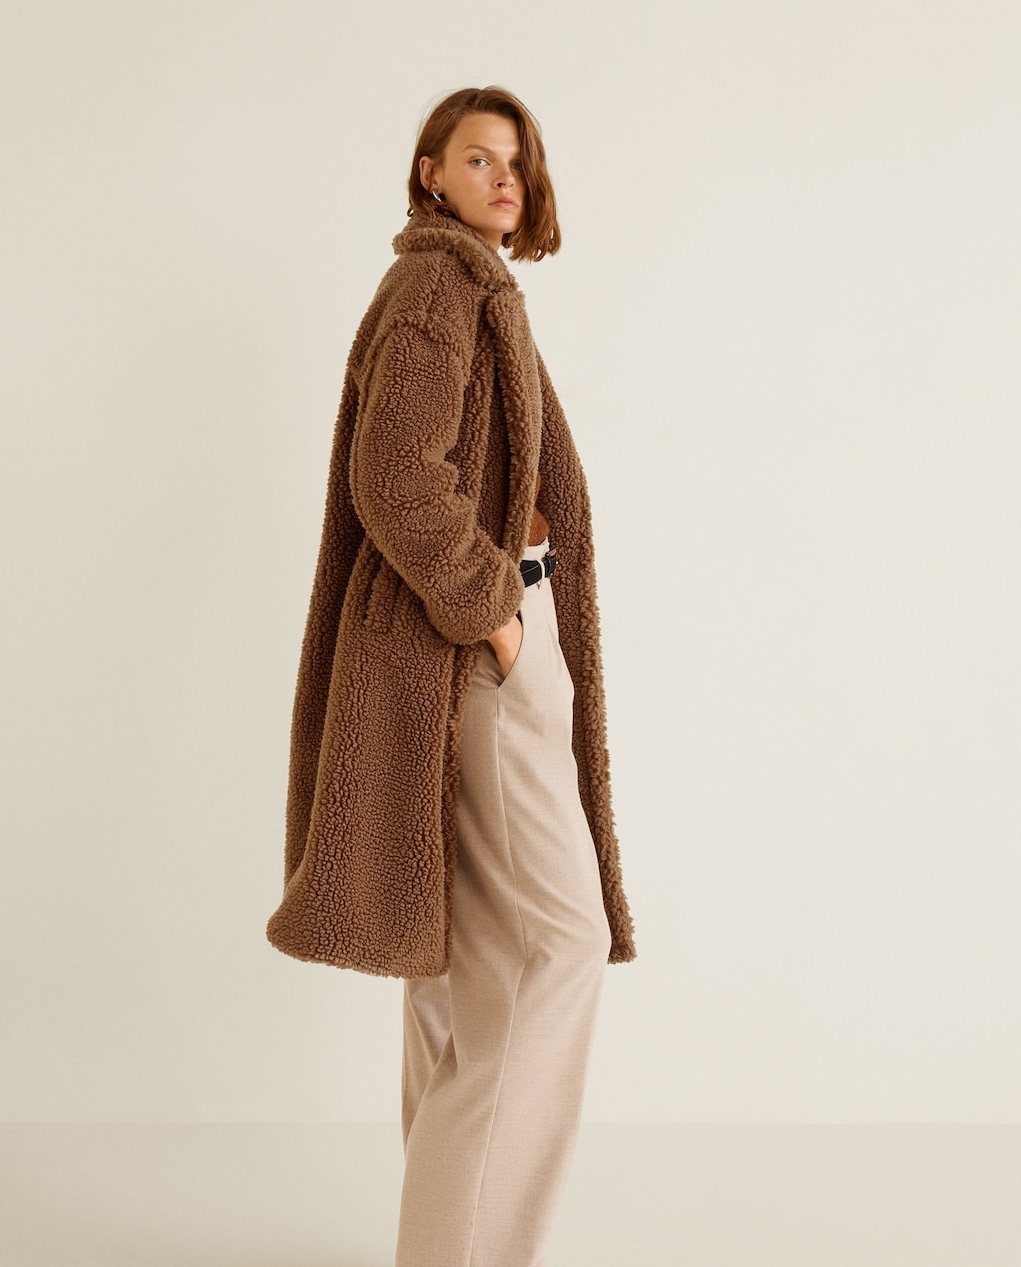 Teddy Coat - $125